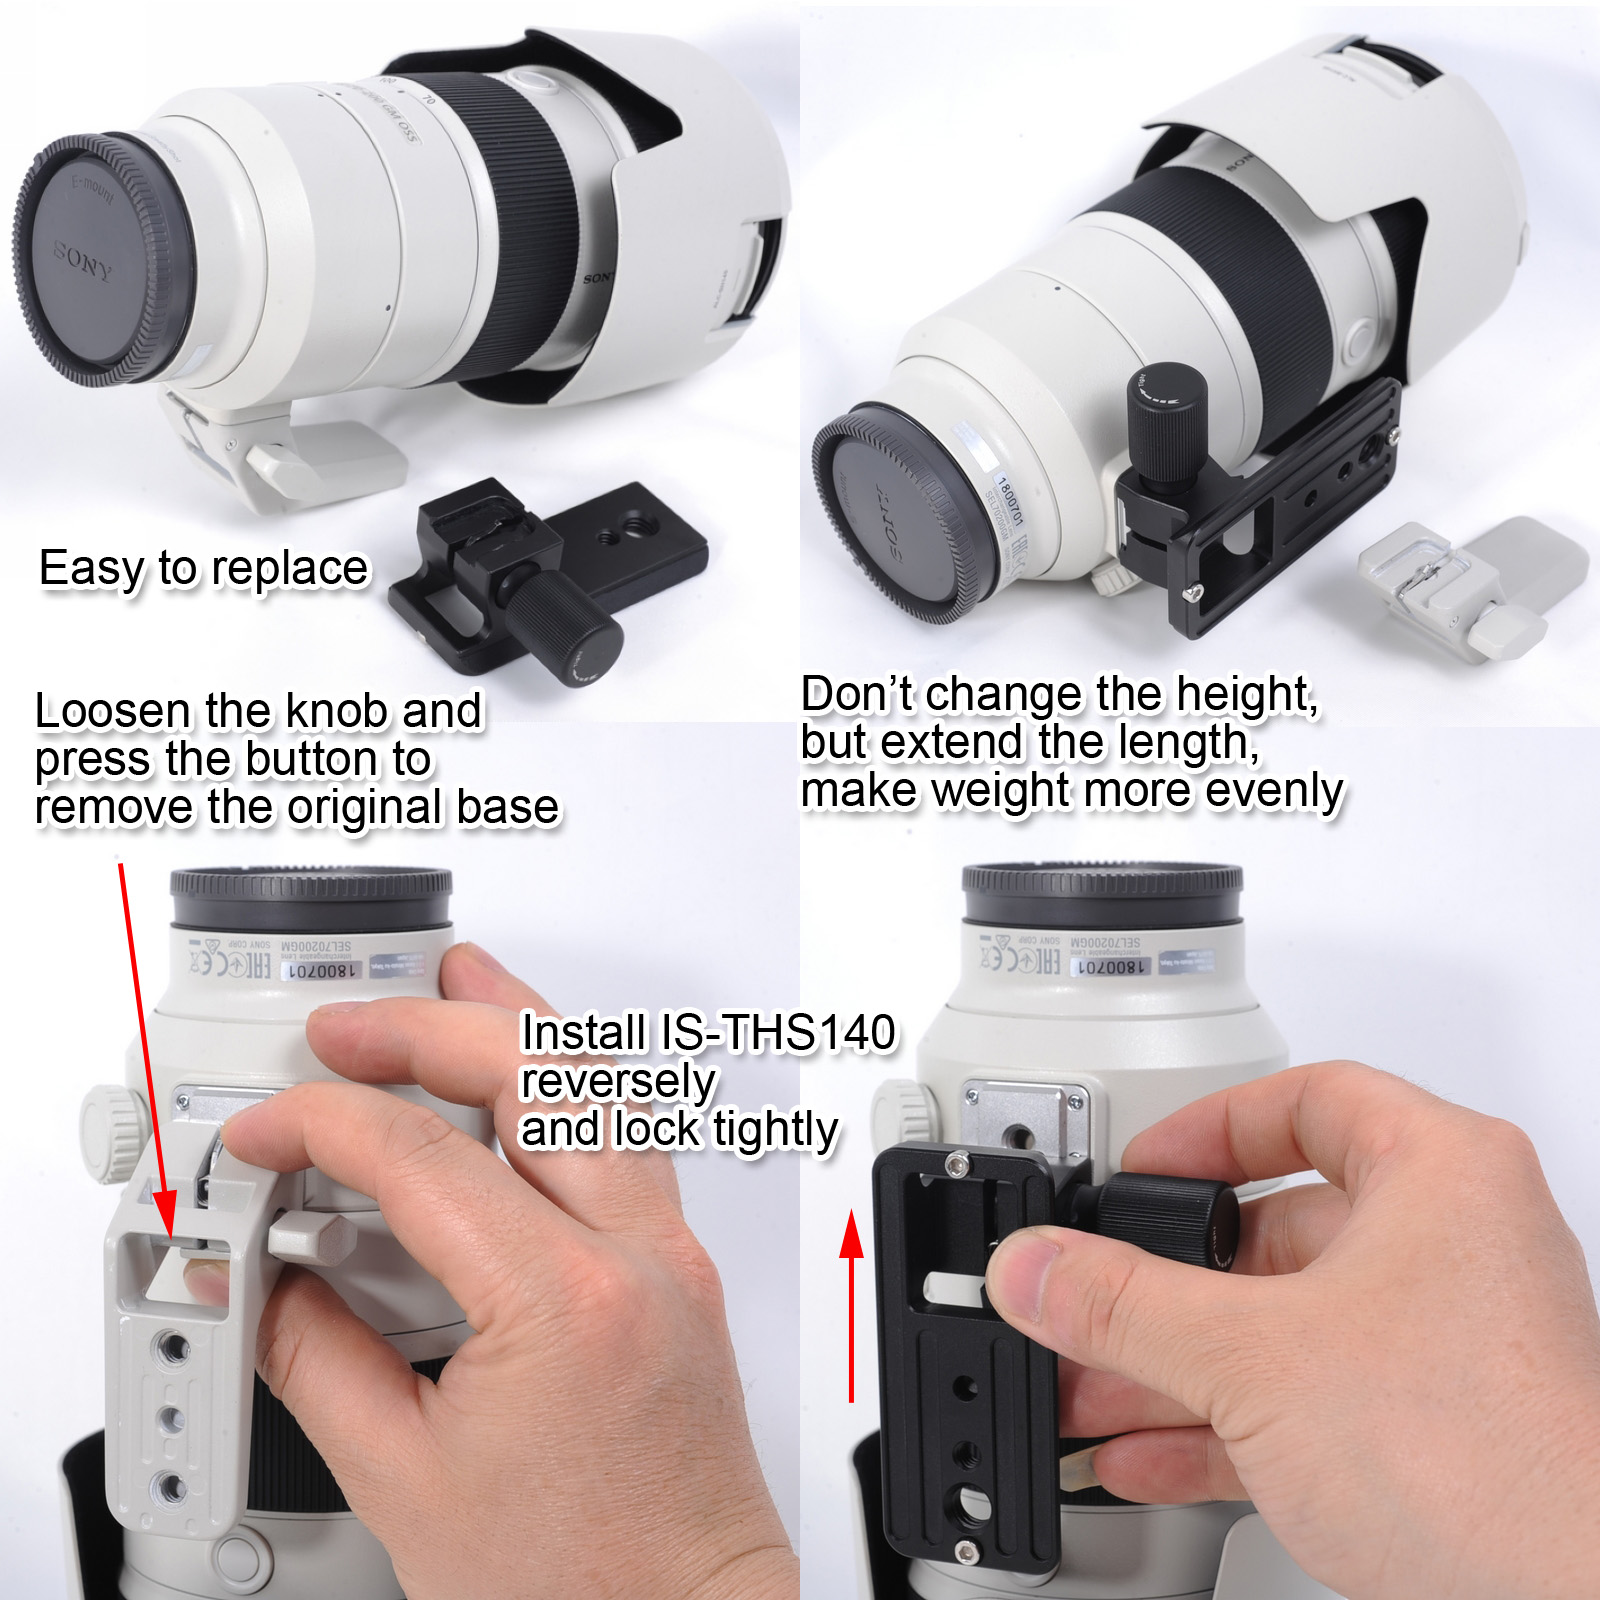 iShoot Lens Replacement Foot Tripod Mount Ring Base with Quick Release Plate Compatible with Sony FE 70-200mm F2.8GM OSS Lens and Sony FE 100-400mm F4.5-5.6 GM OSS Mirrorless Camera Lens